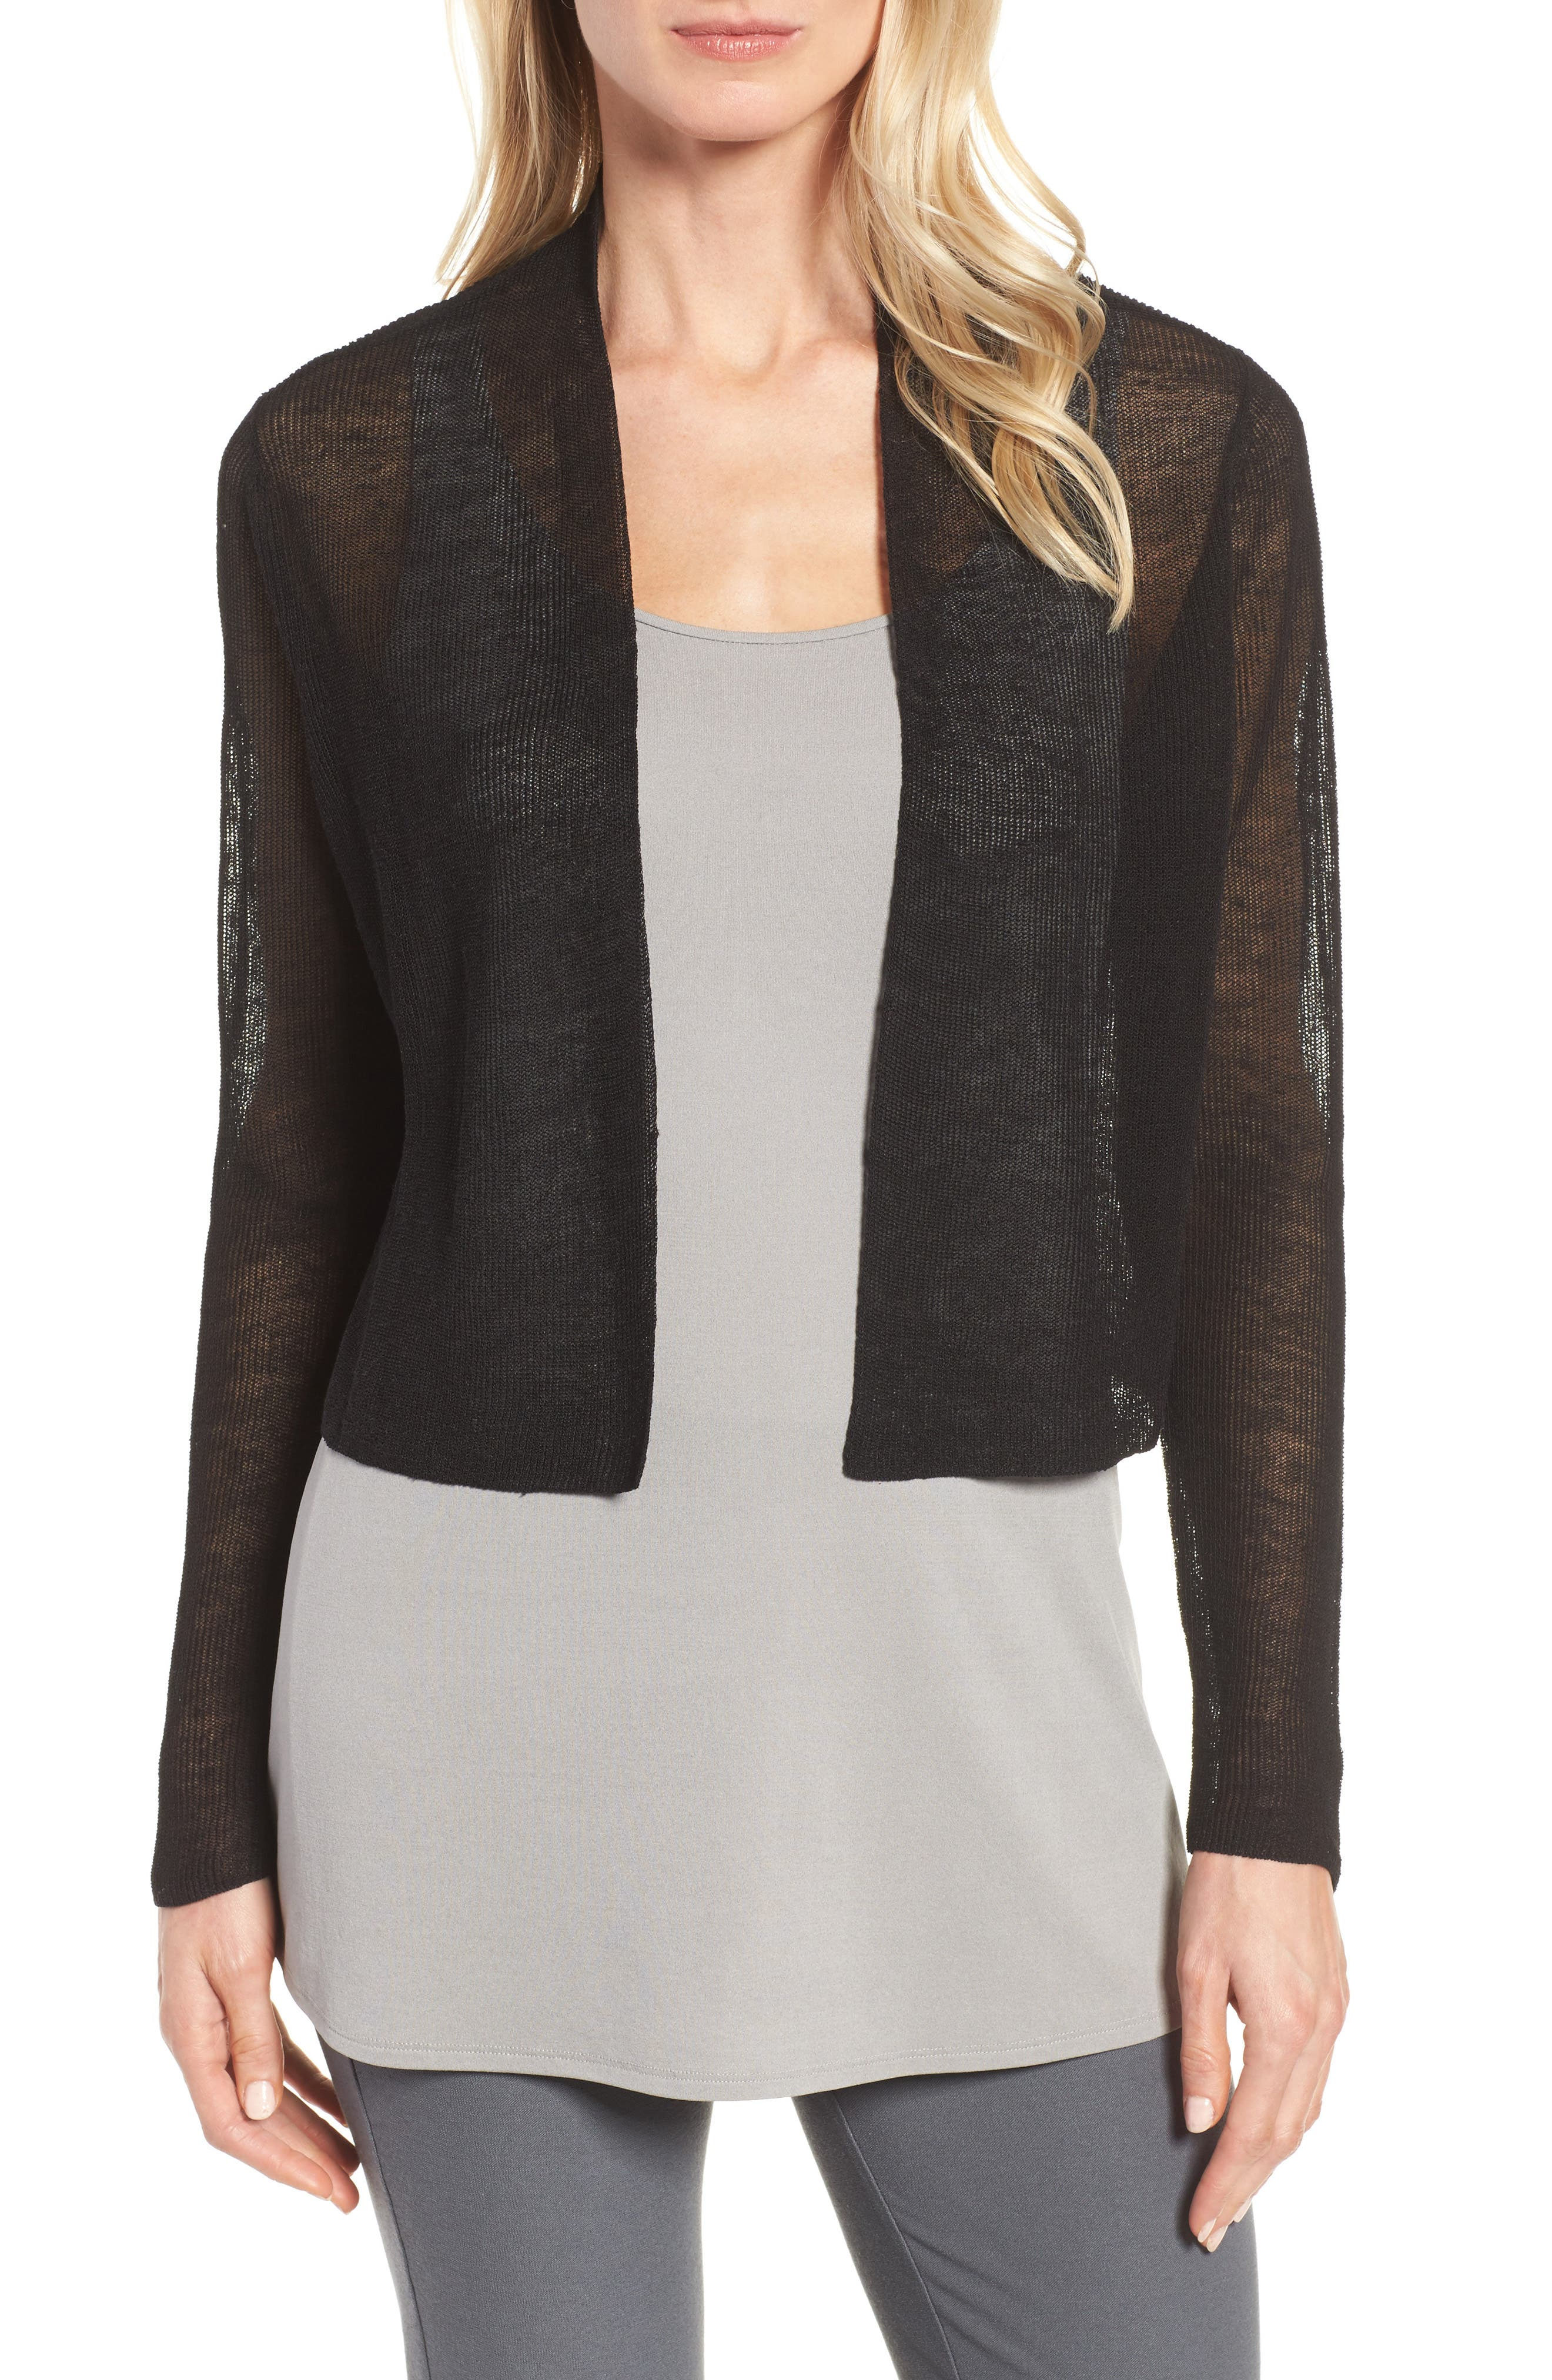 Organic Linen Blend Crop Cardigan,                             Main thumbnail 1, color,                             Black